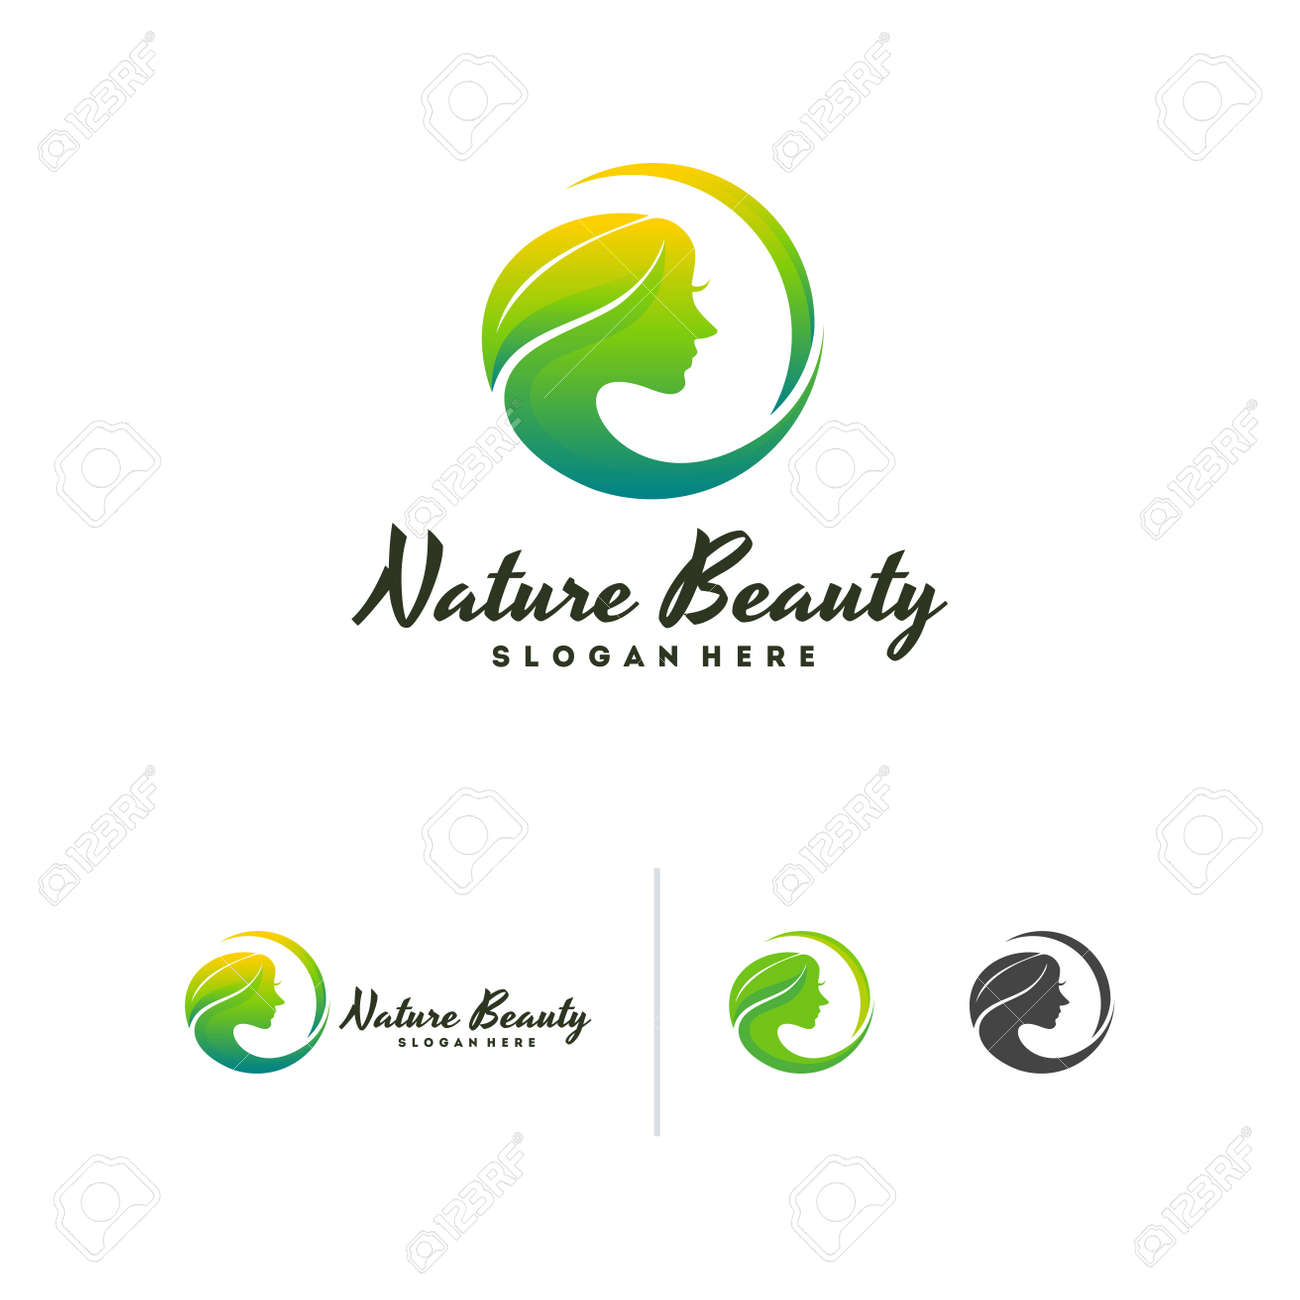 Nature Beauty Logo Vector Leaf And Beauty Face Logo Template Royalty Free Cliparts Vectors And Stock Illustration Image 140281023